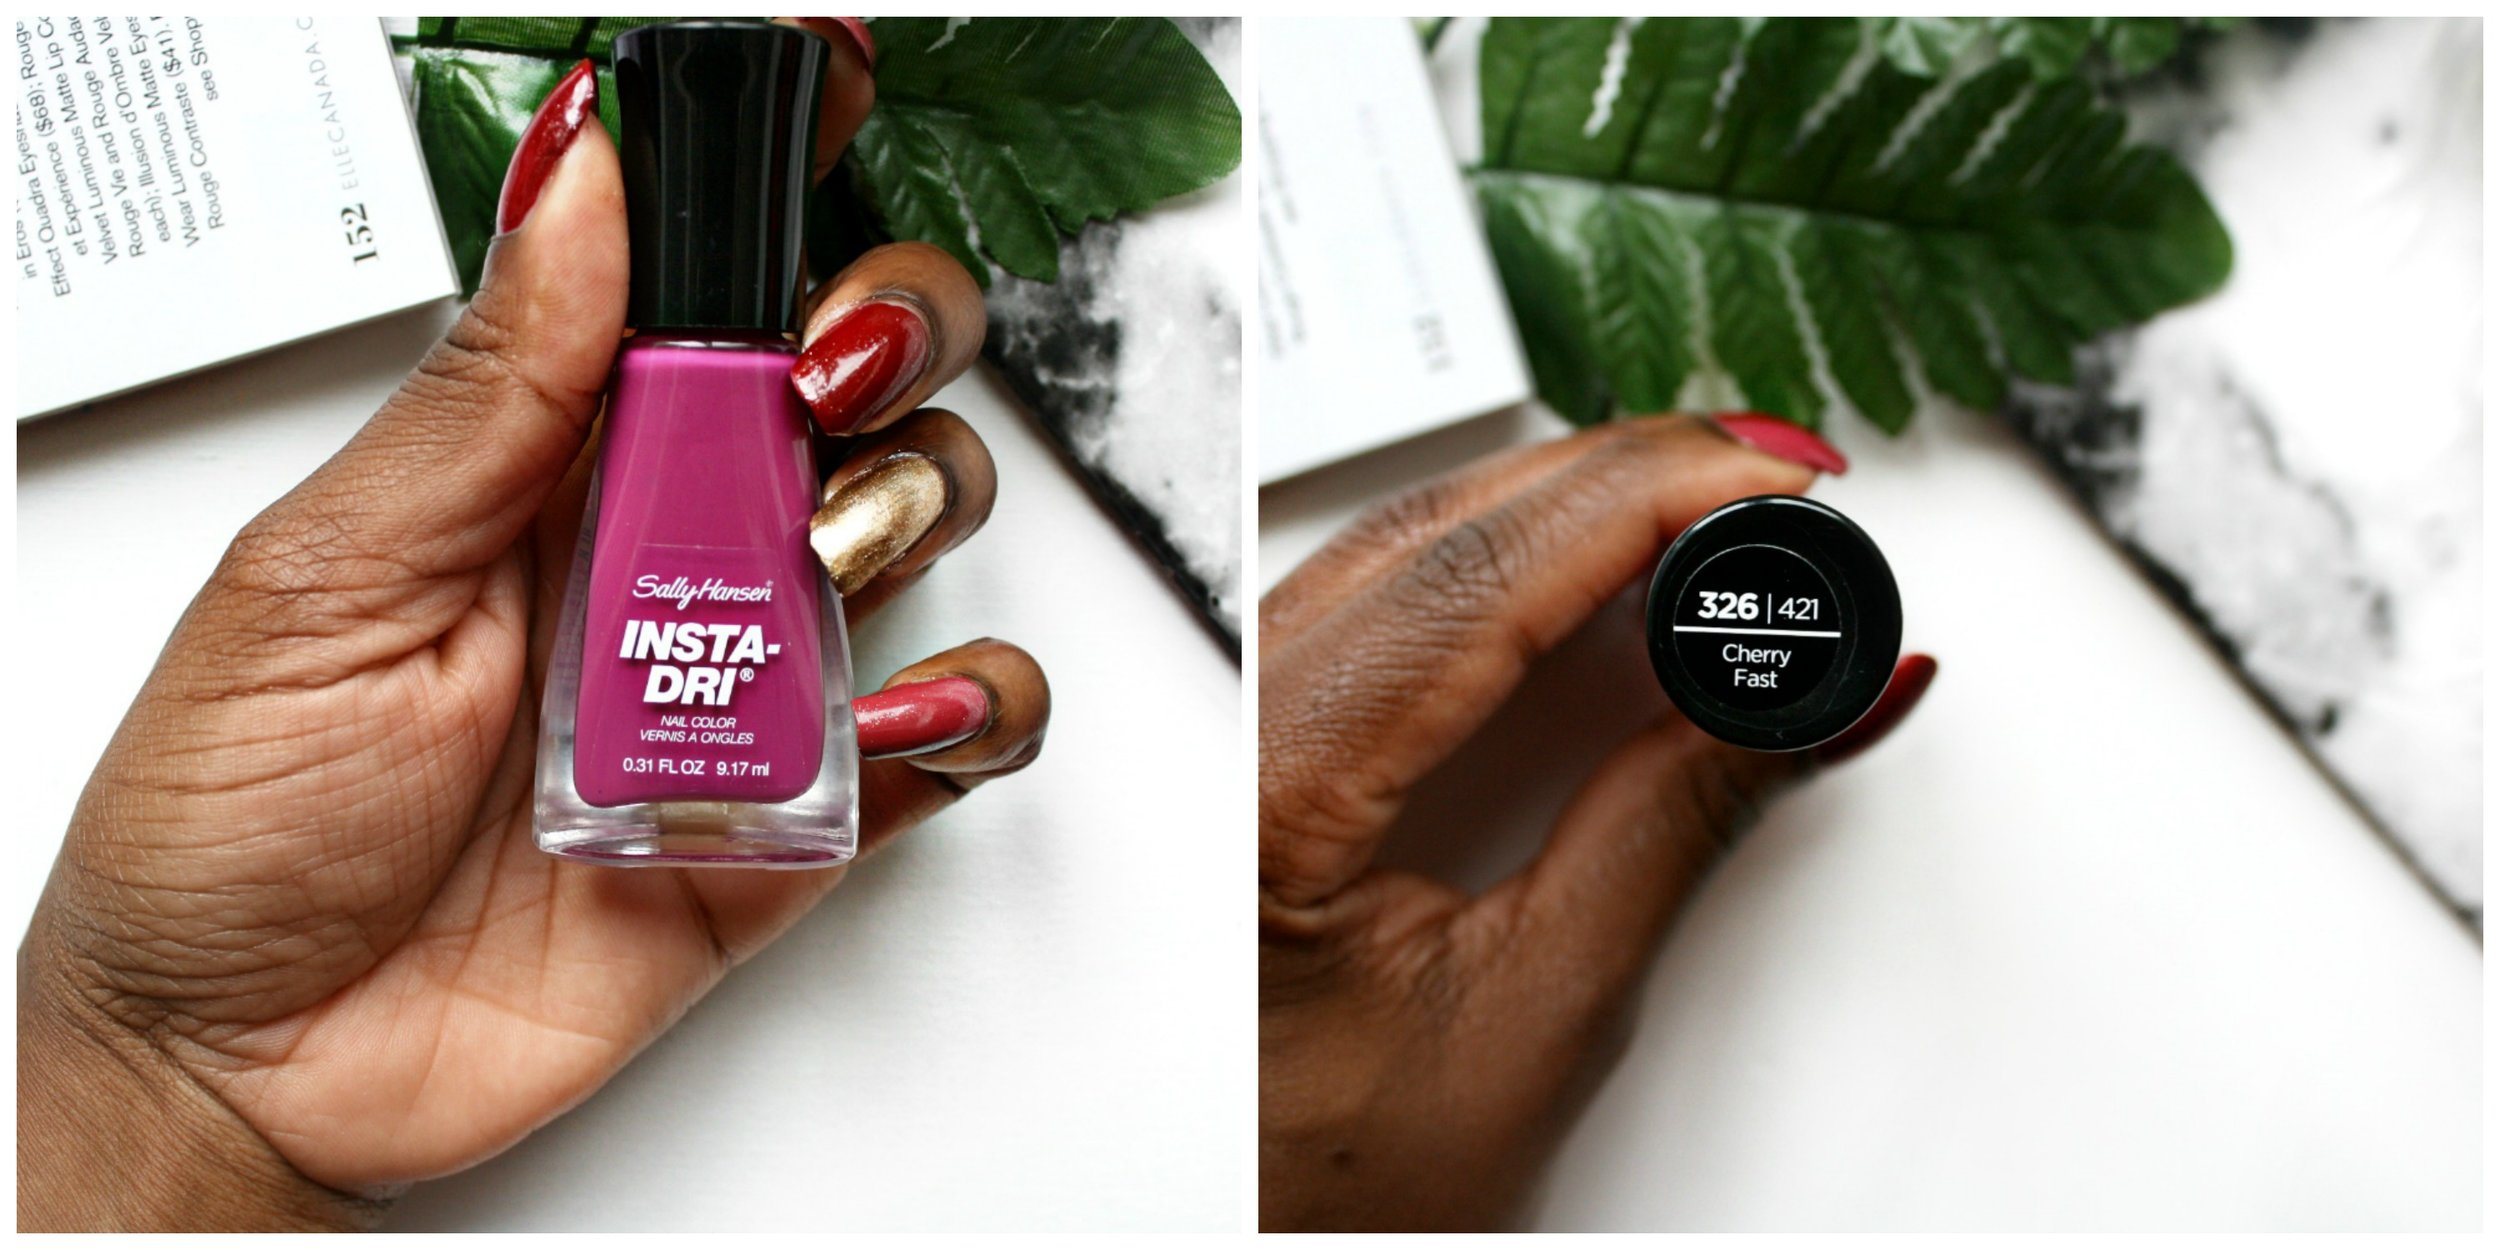 """Have you ever been curious about this Sally Hansen """"insta-dry"""" nail polish? Does it actually work?! Then Click Here to read my review & find out if it's legit!!"""